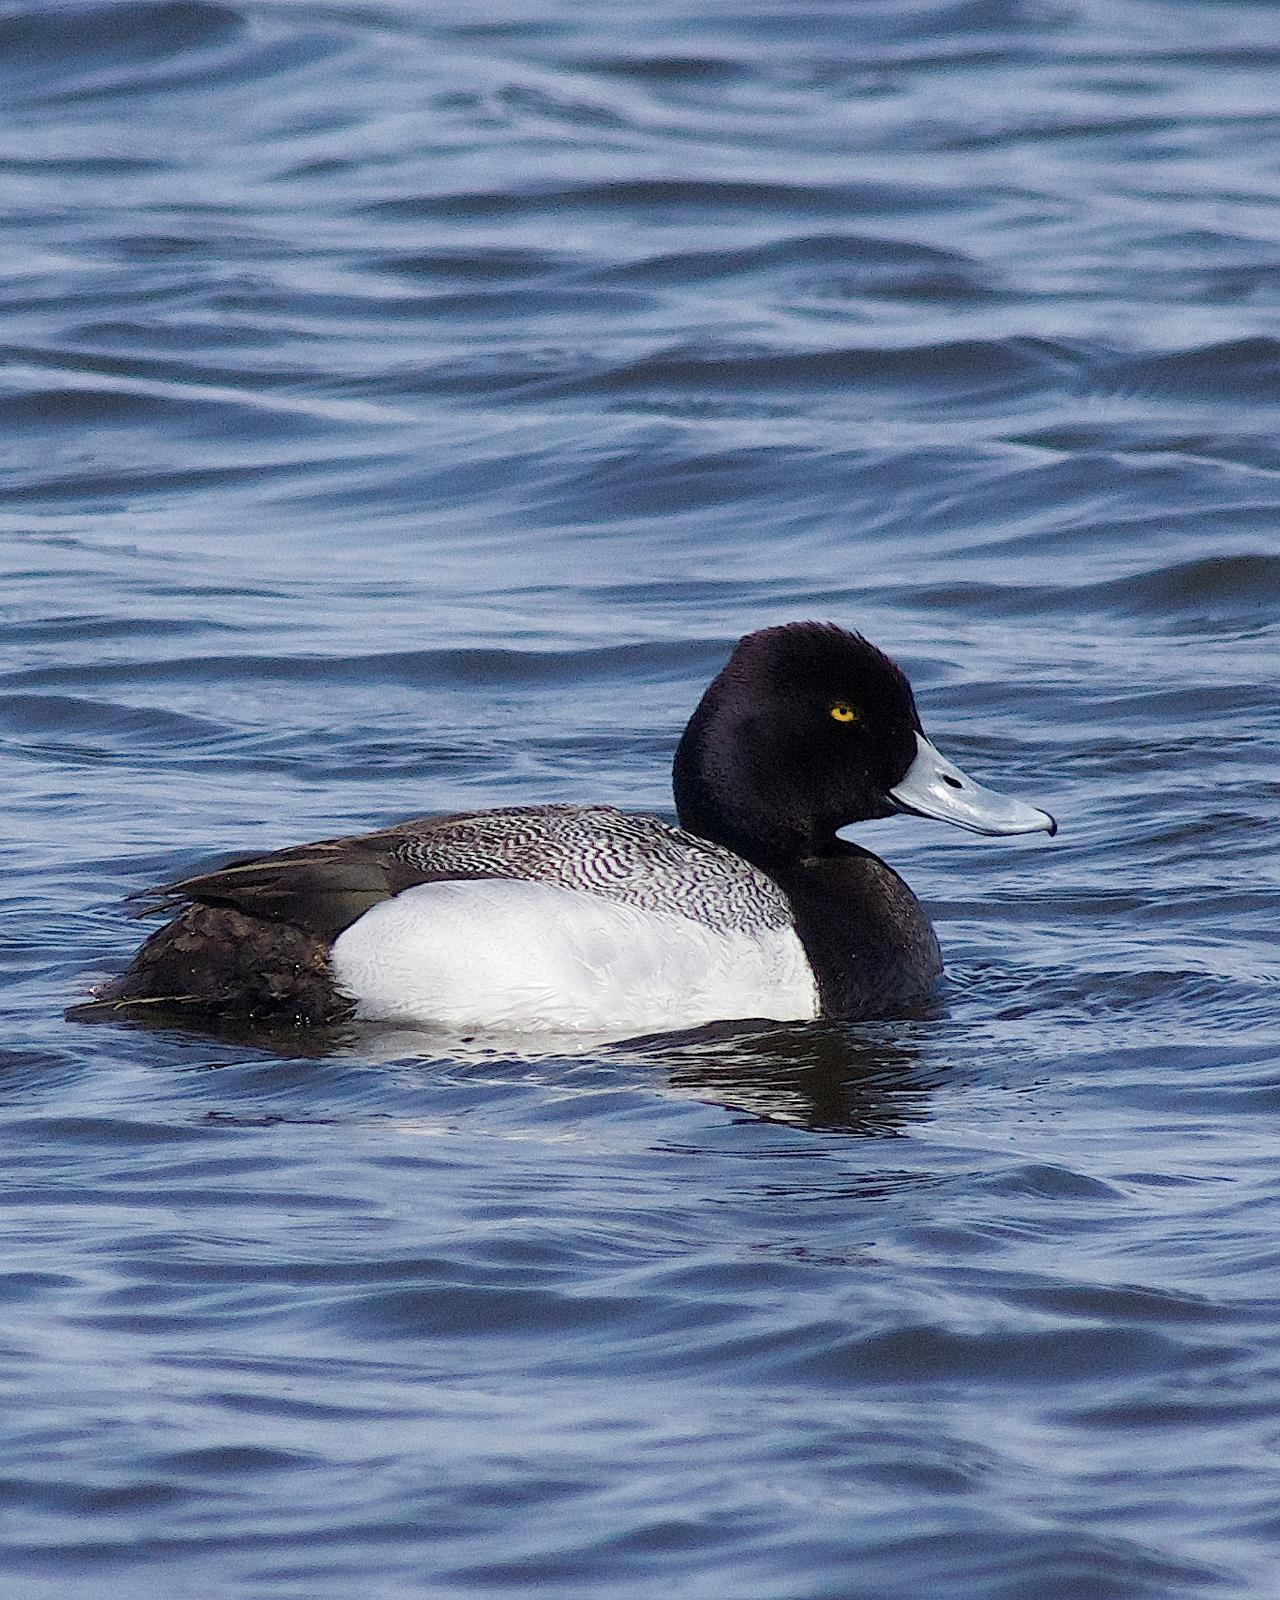 Lesser Scaup Photo by Gerald Hoekstra